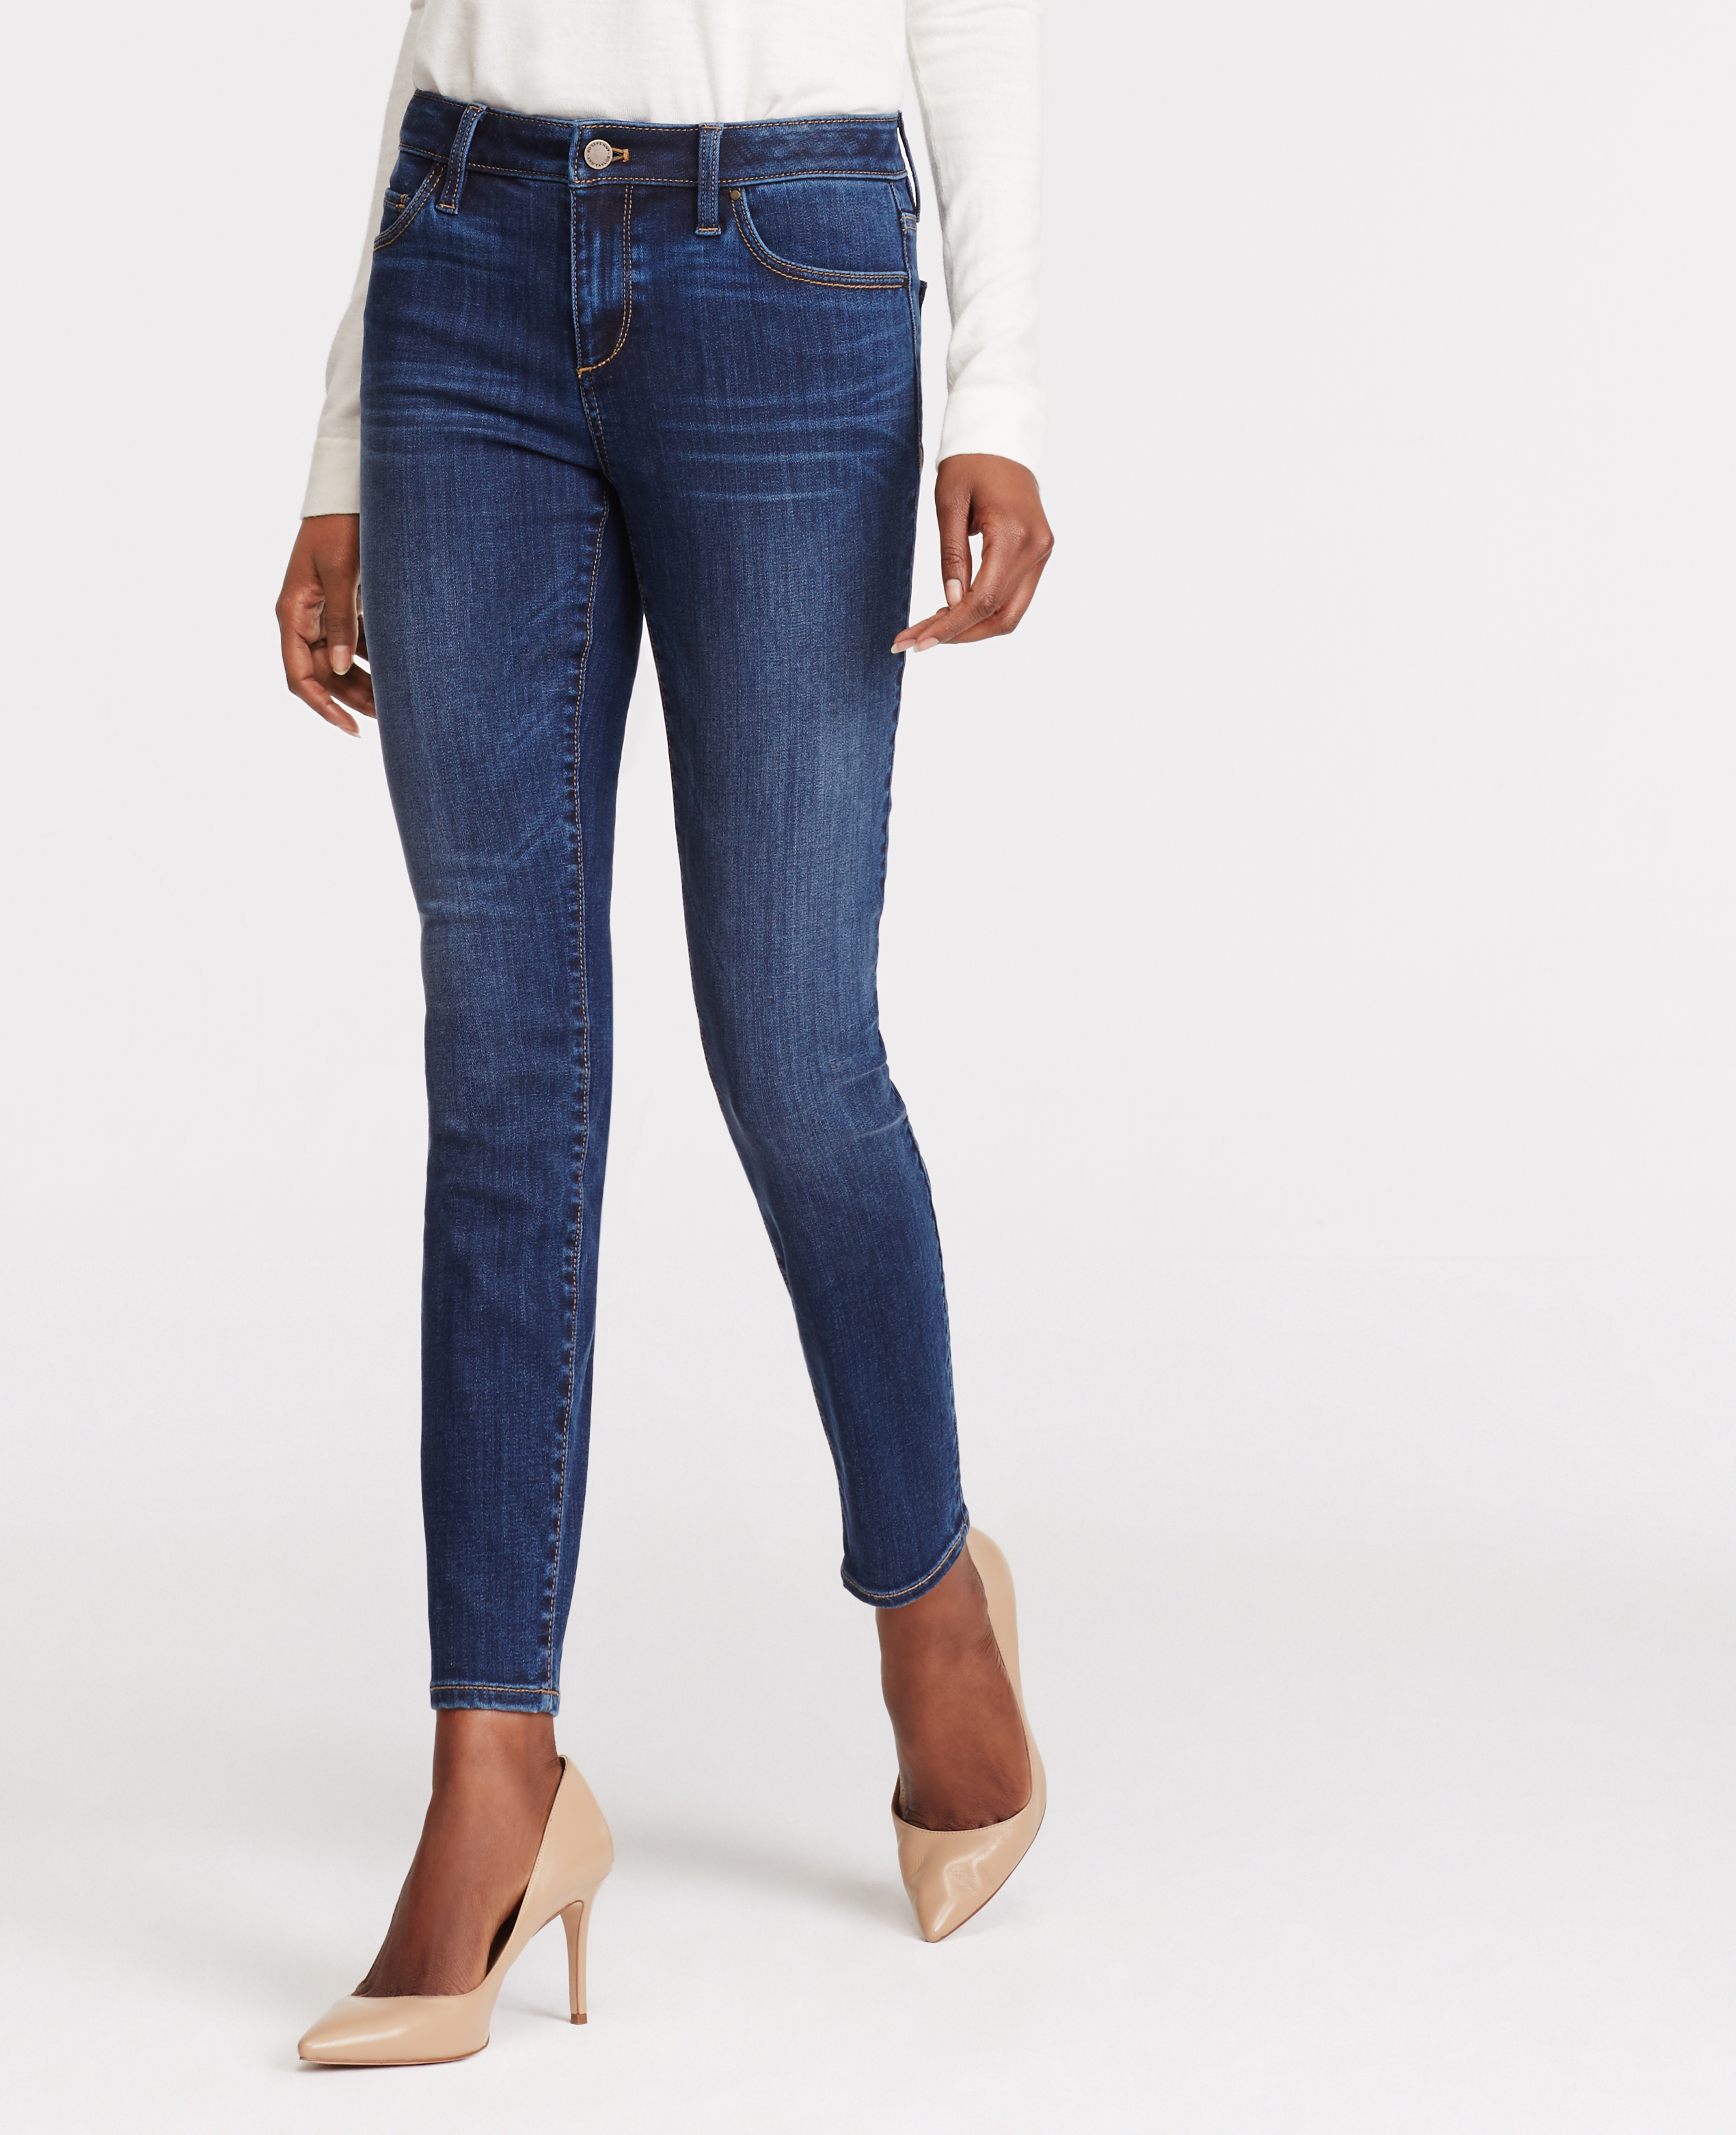 A staple for every woman's closet, our petite curvy jeans are designed to flatter. Explore our wide selection of curvy petite jeans for women, today.